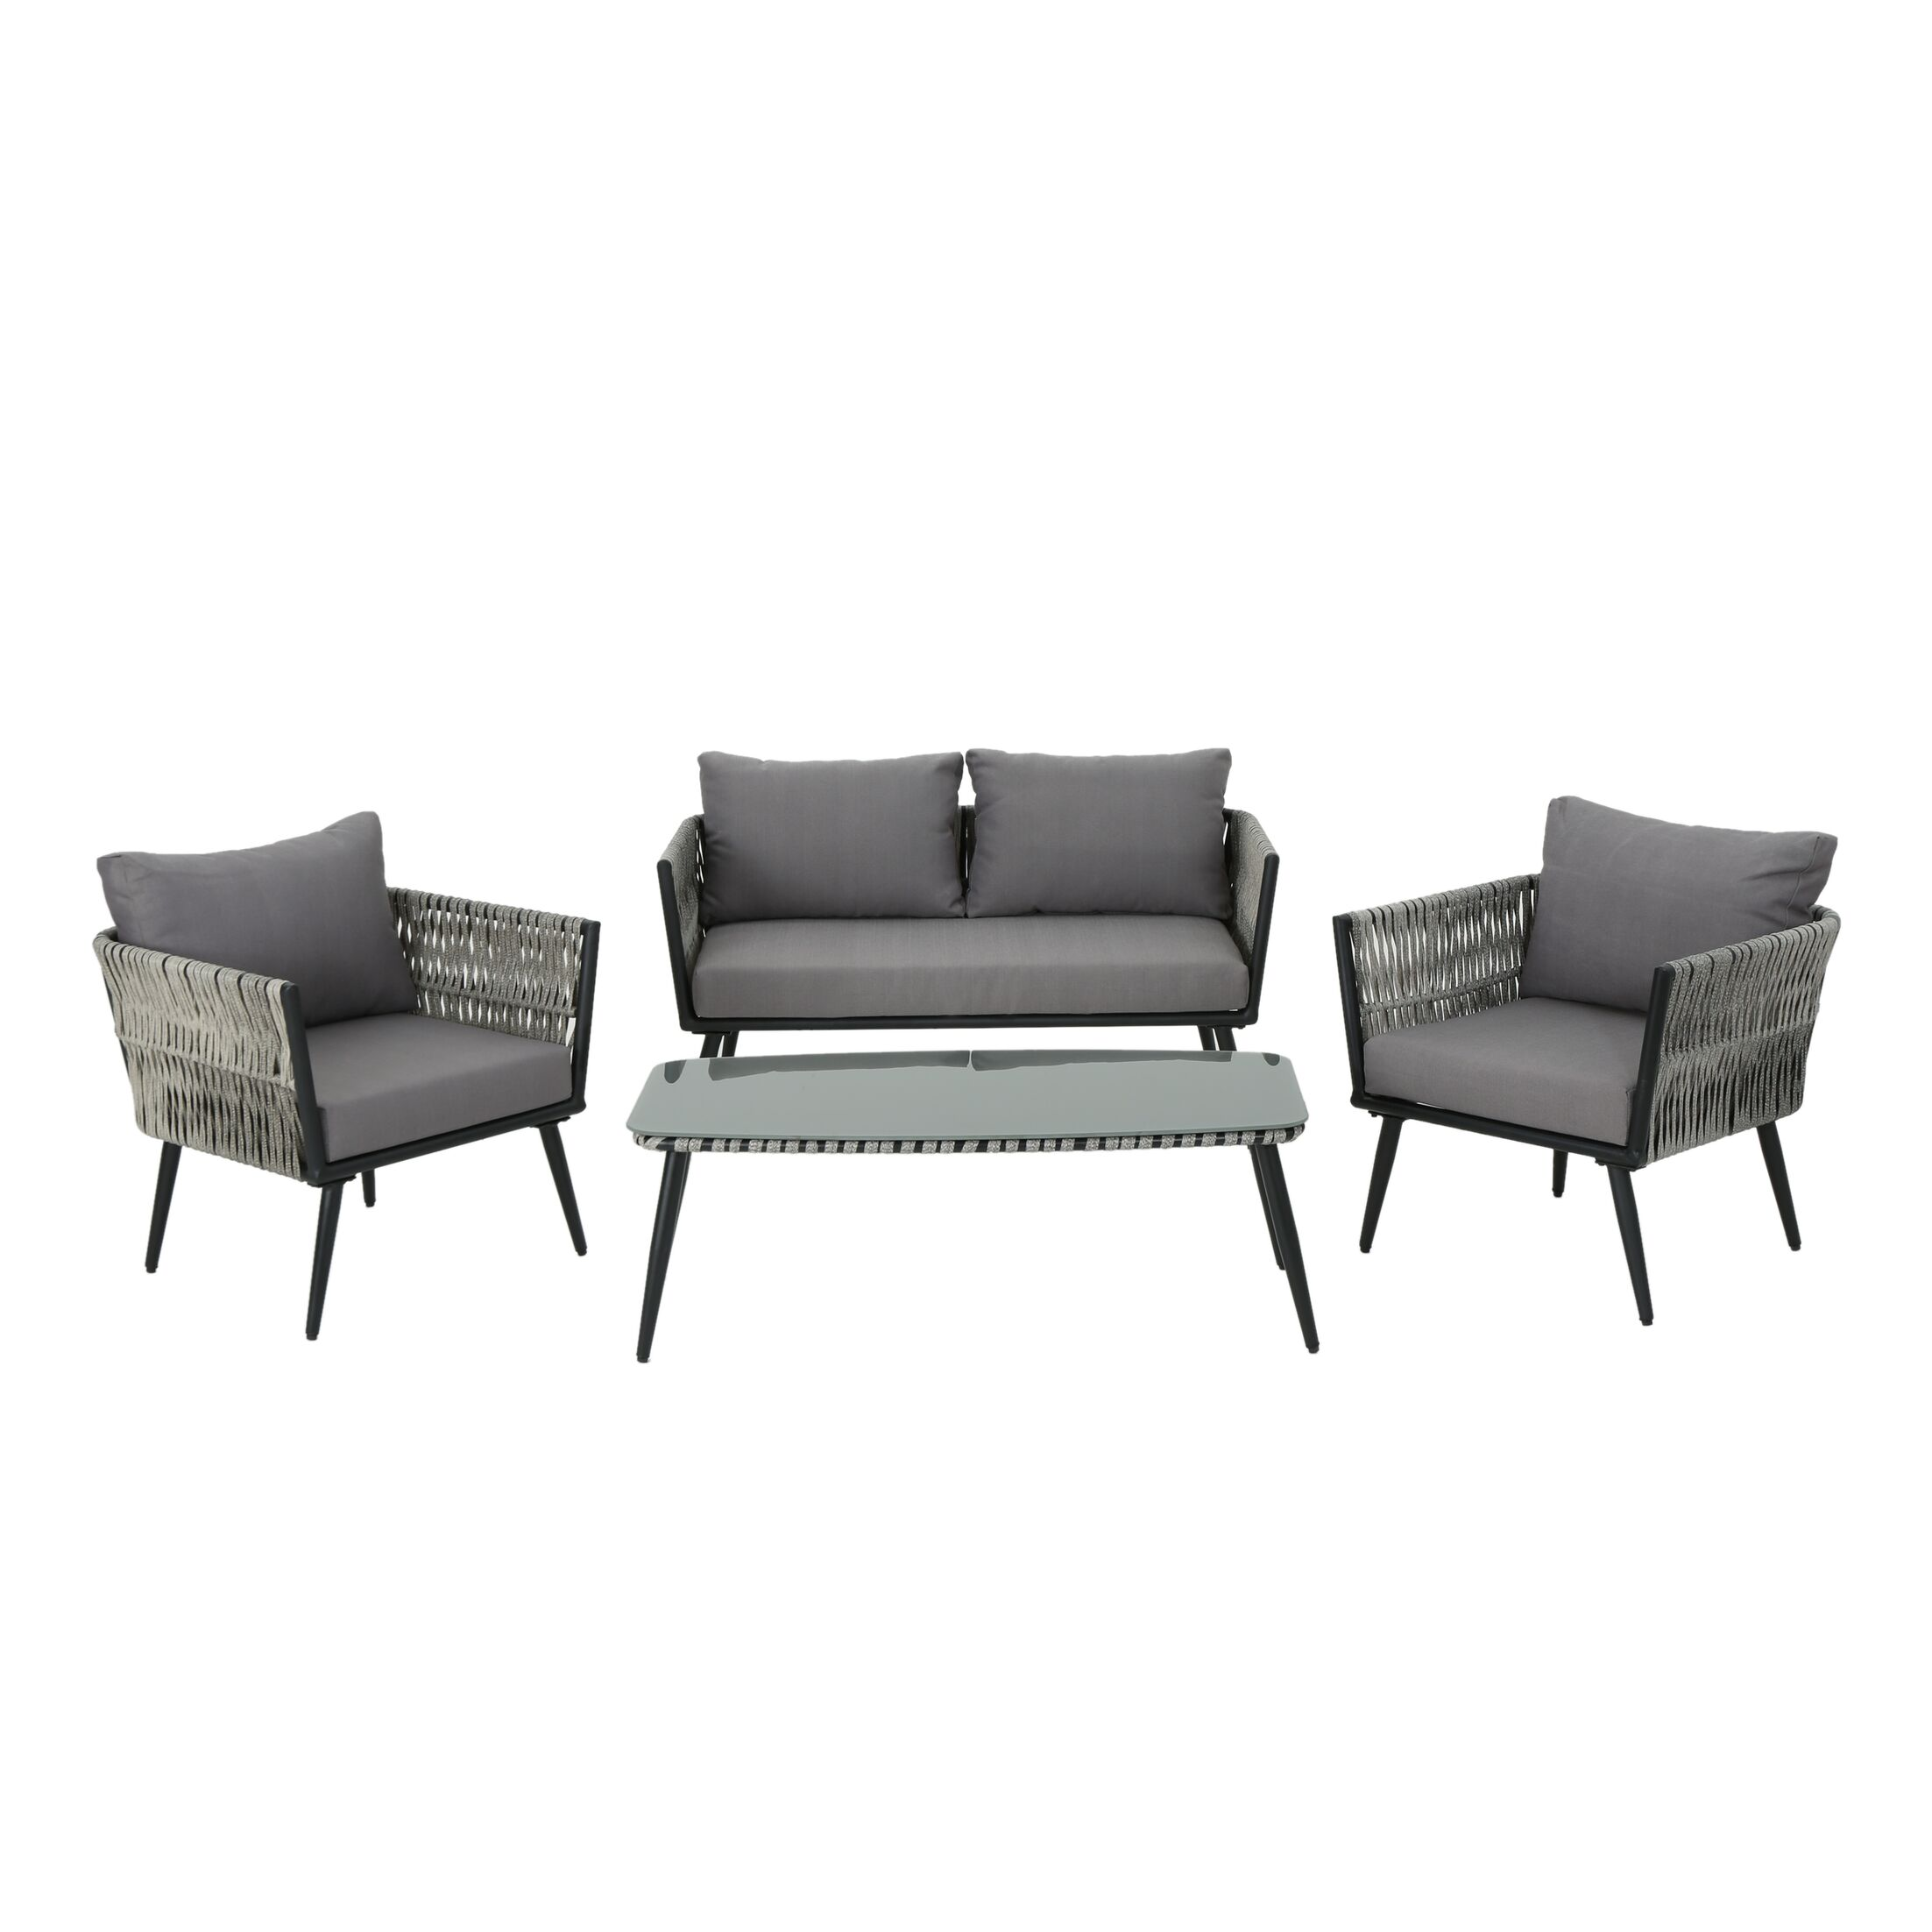 Liberatore 4 Piece Seating Group with Cushions Cushion Color: Dark Gray